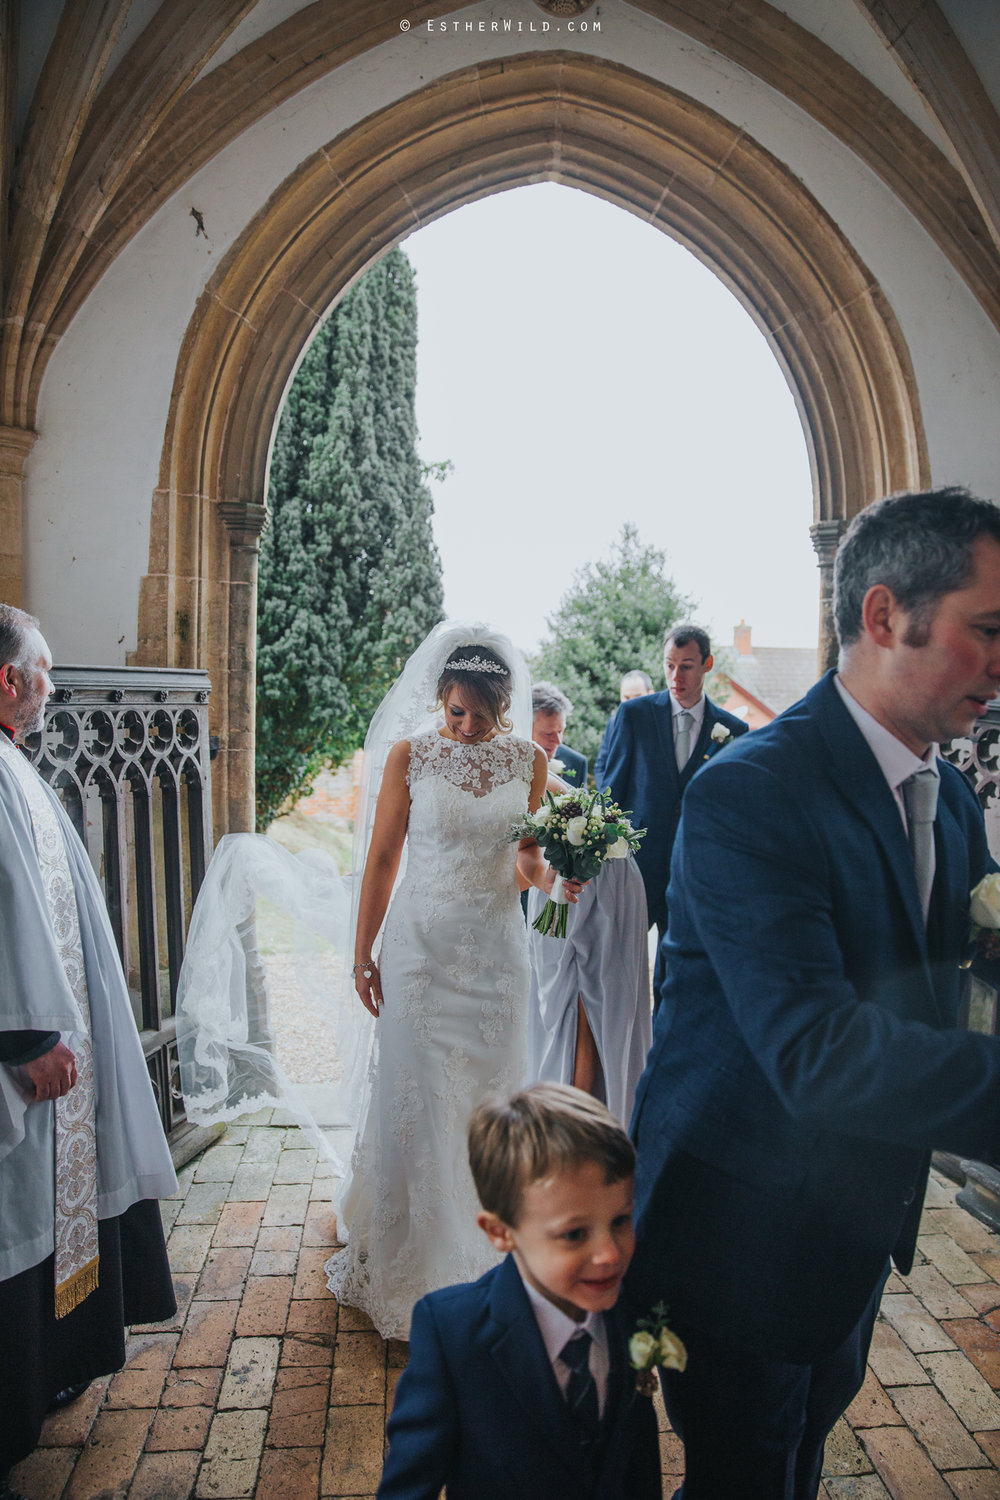 Wedding_Photography_Diss_Gawdy_Hall_Redenhall_Church_Norfolk_Winter_Esther_Wild_Copyright_IMG_1054.jpg